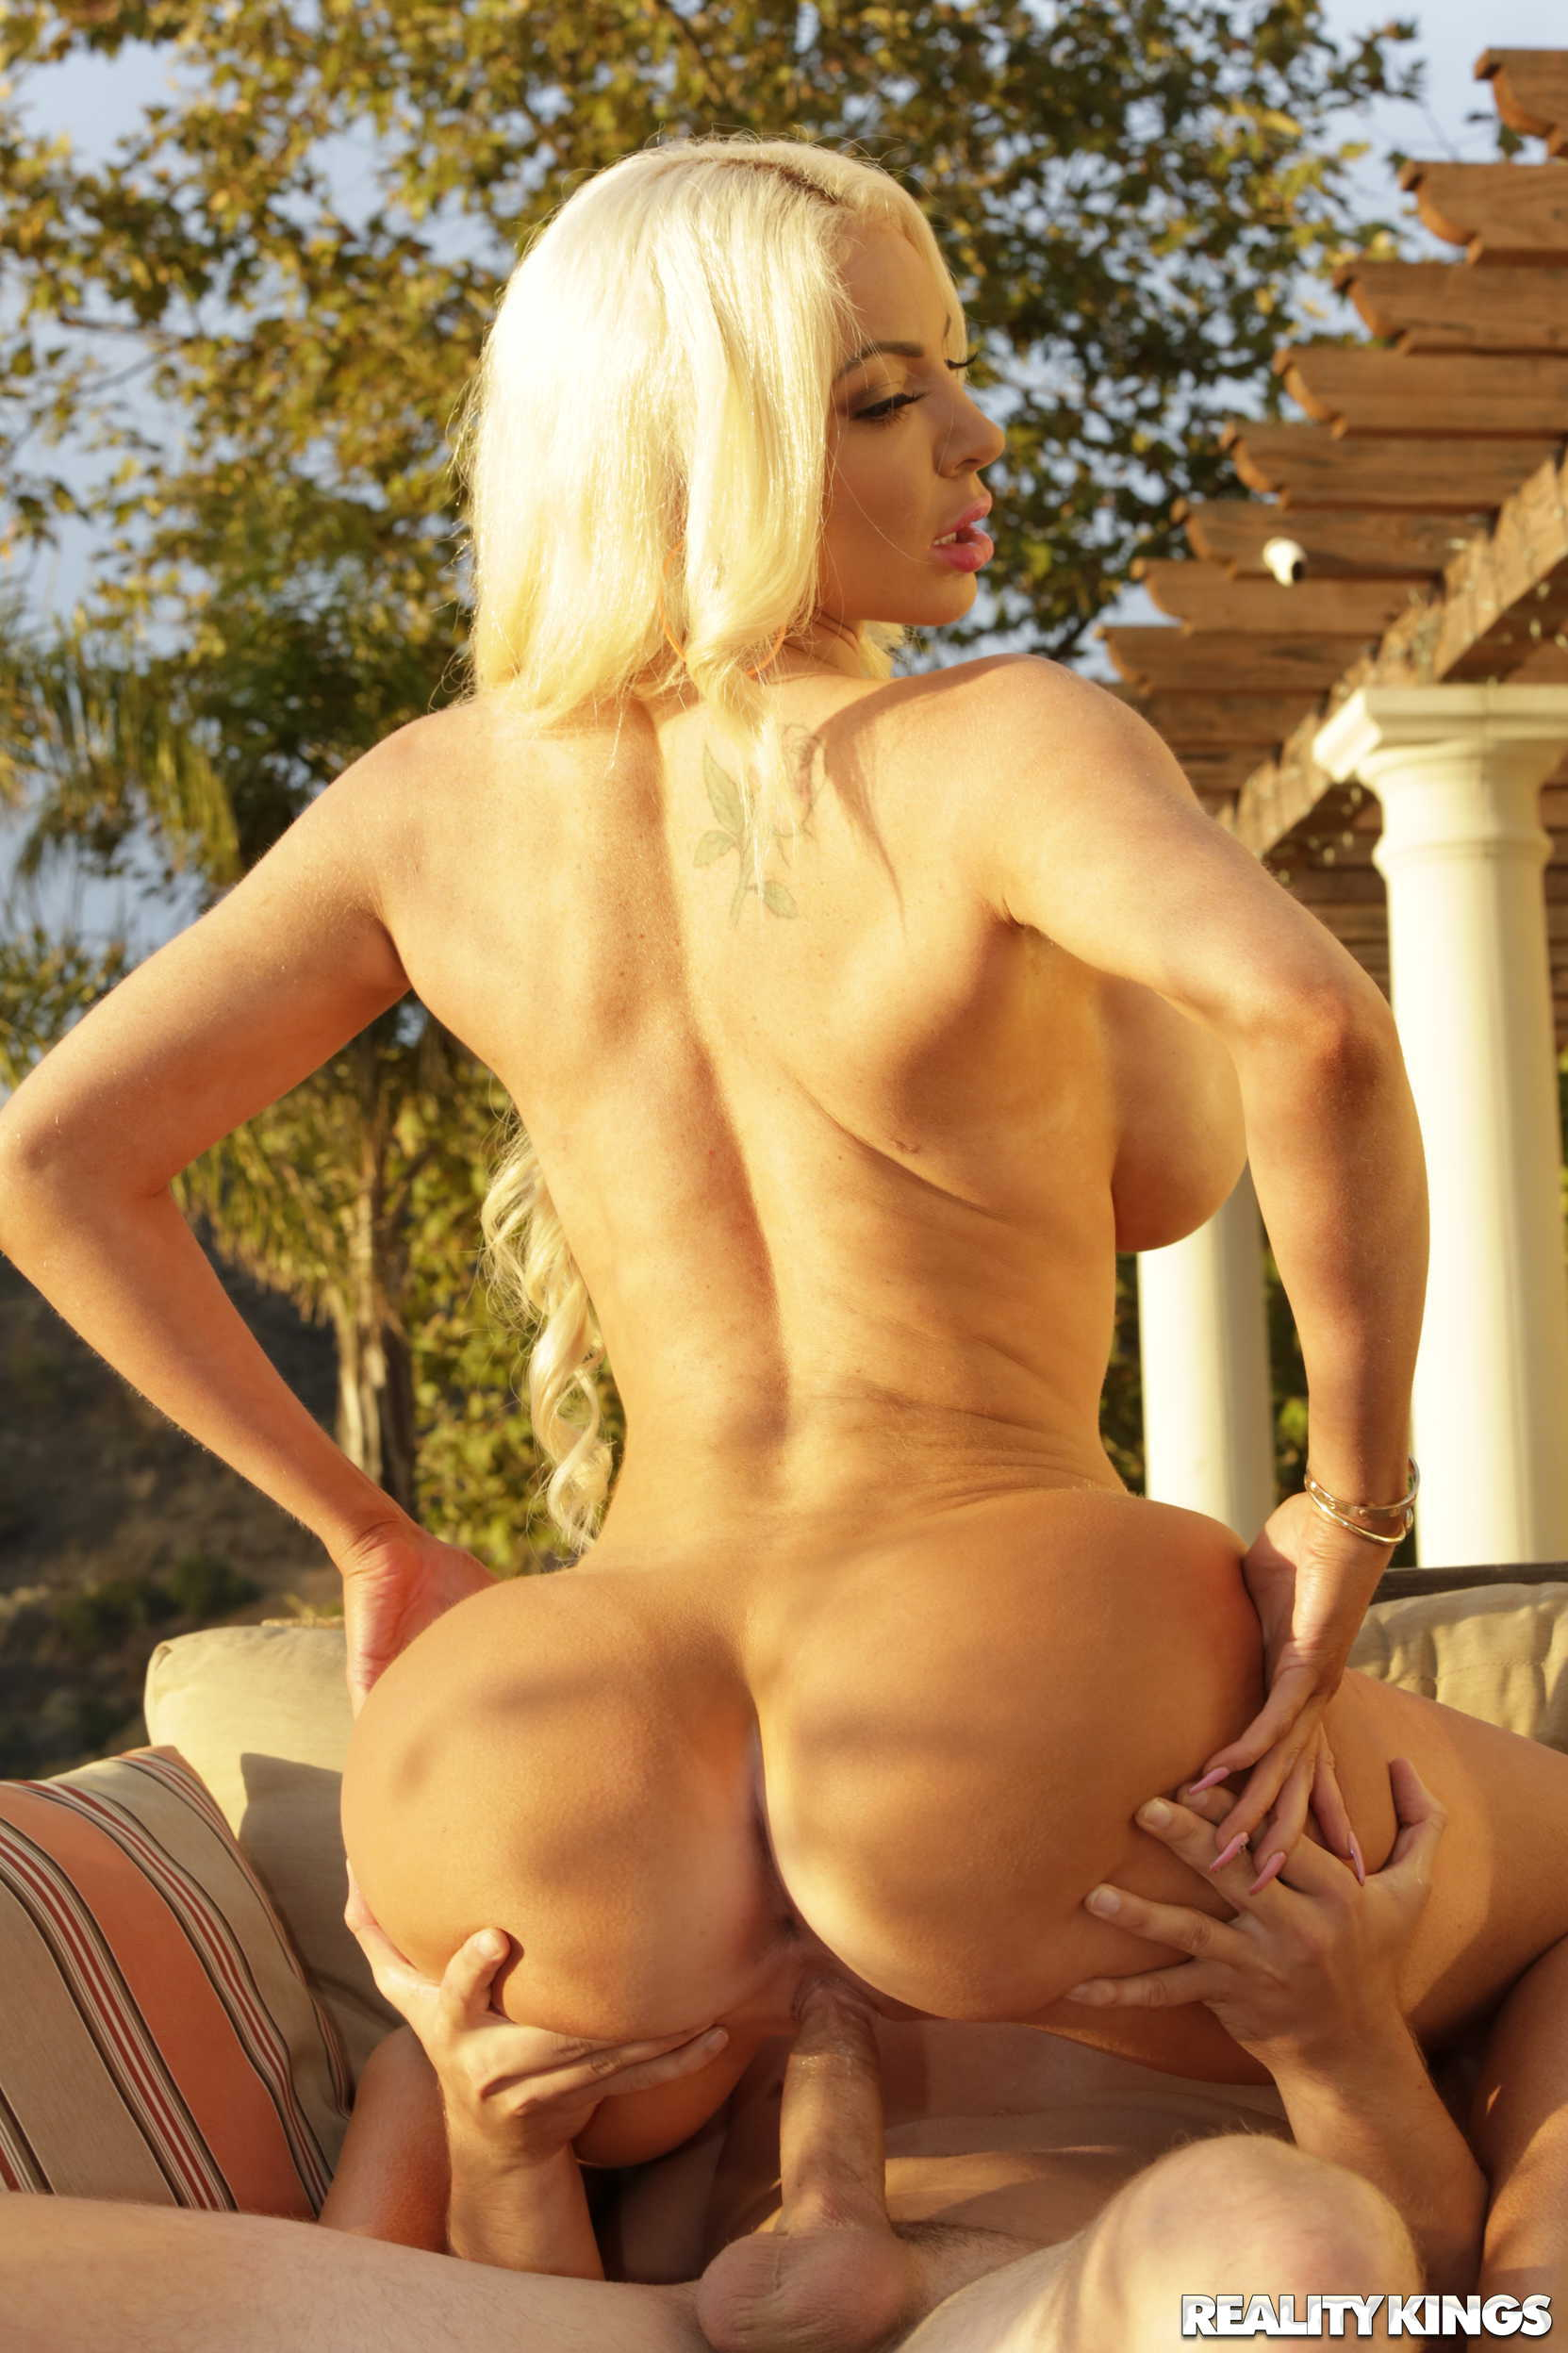 Reality Kings 'Vacation Vibes' starring Nicolette Shea (Photo 104)